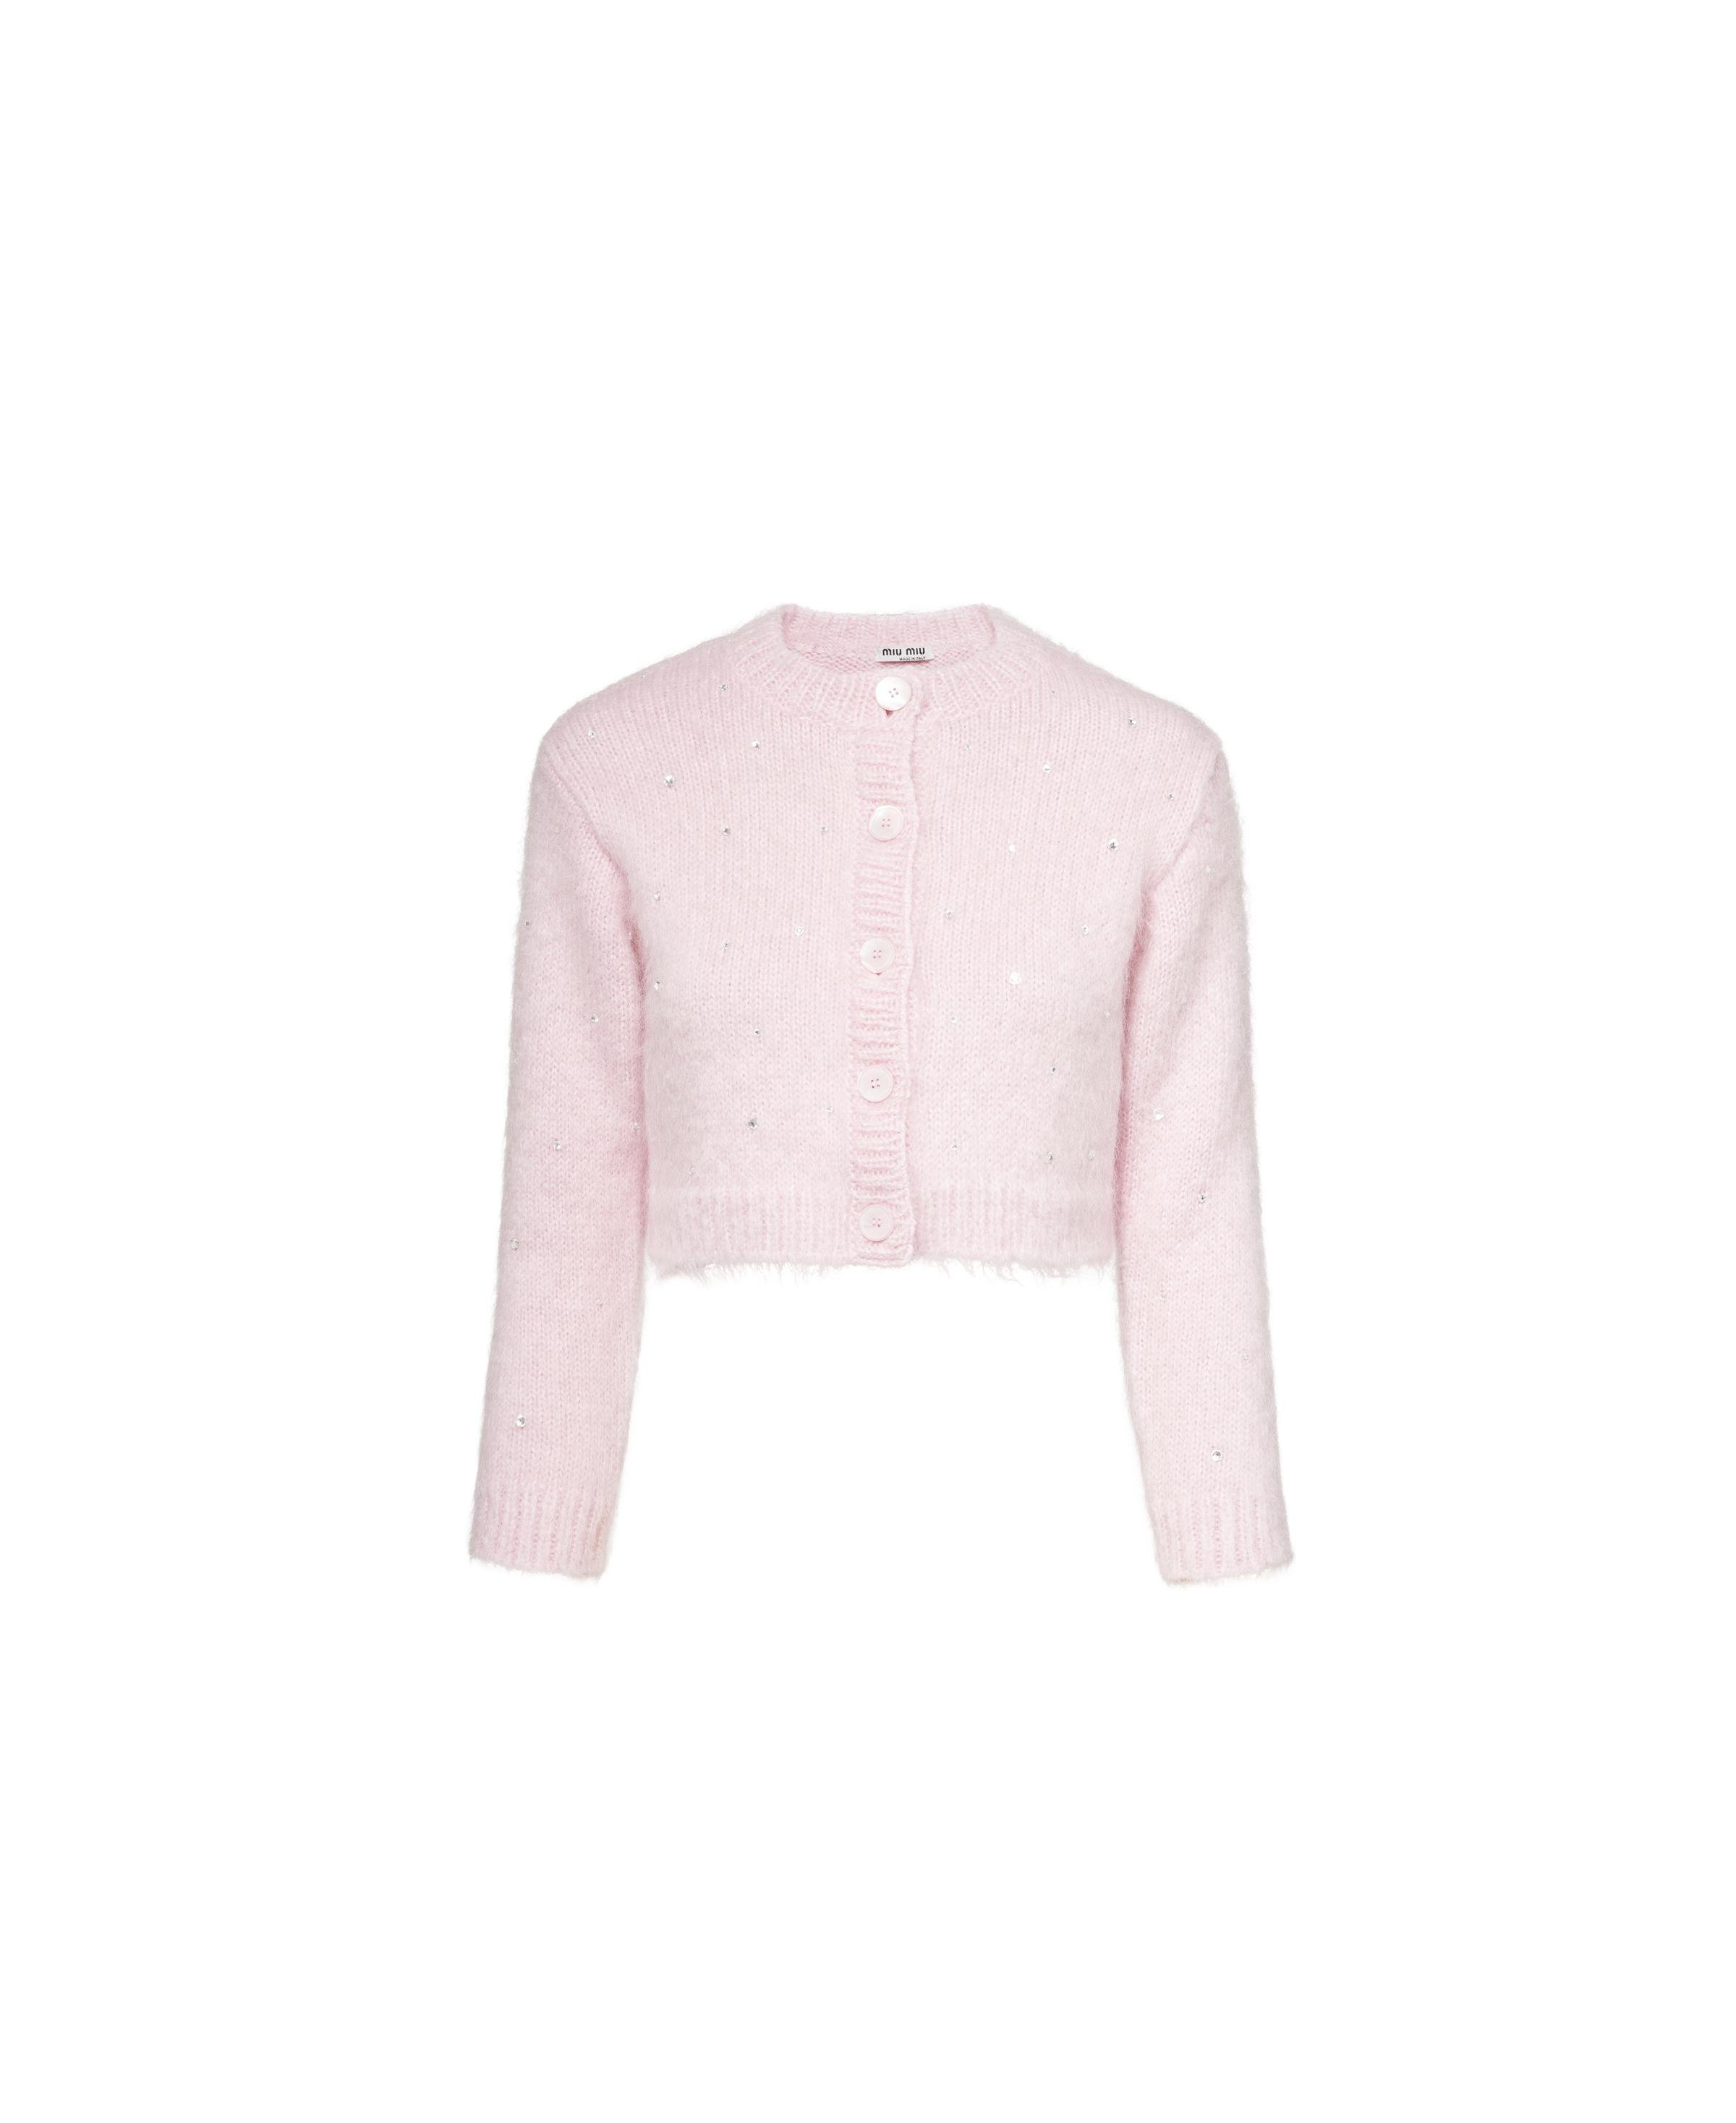 Embroidered Mohair Cardigan Women Pink